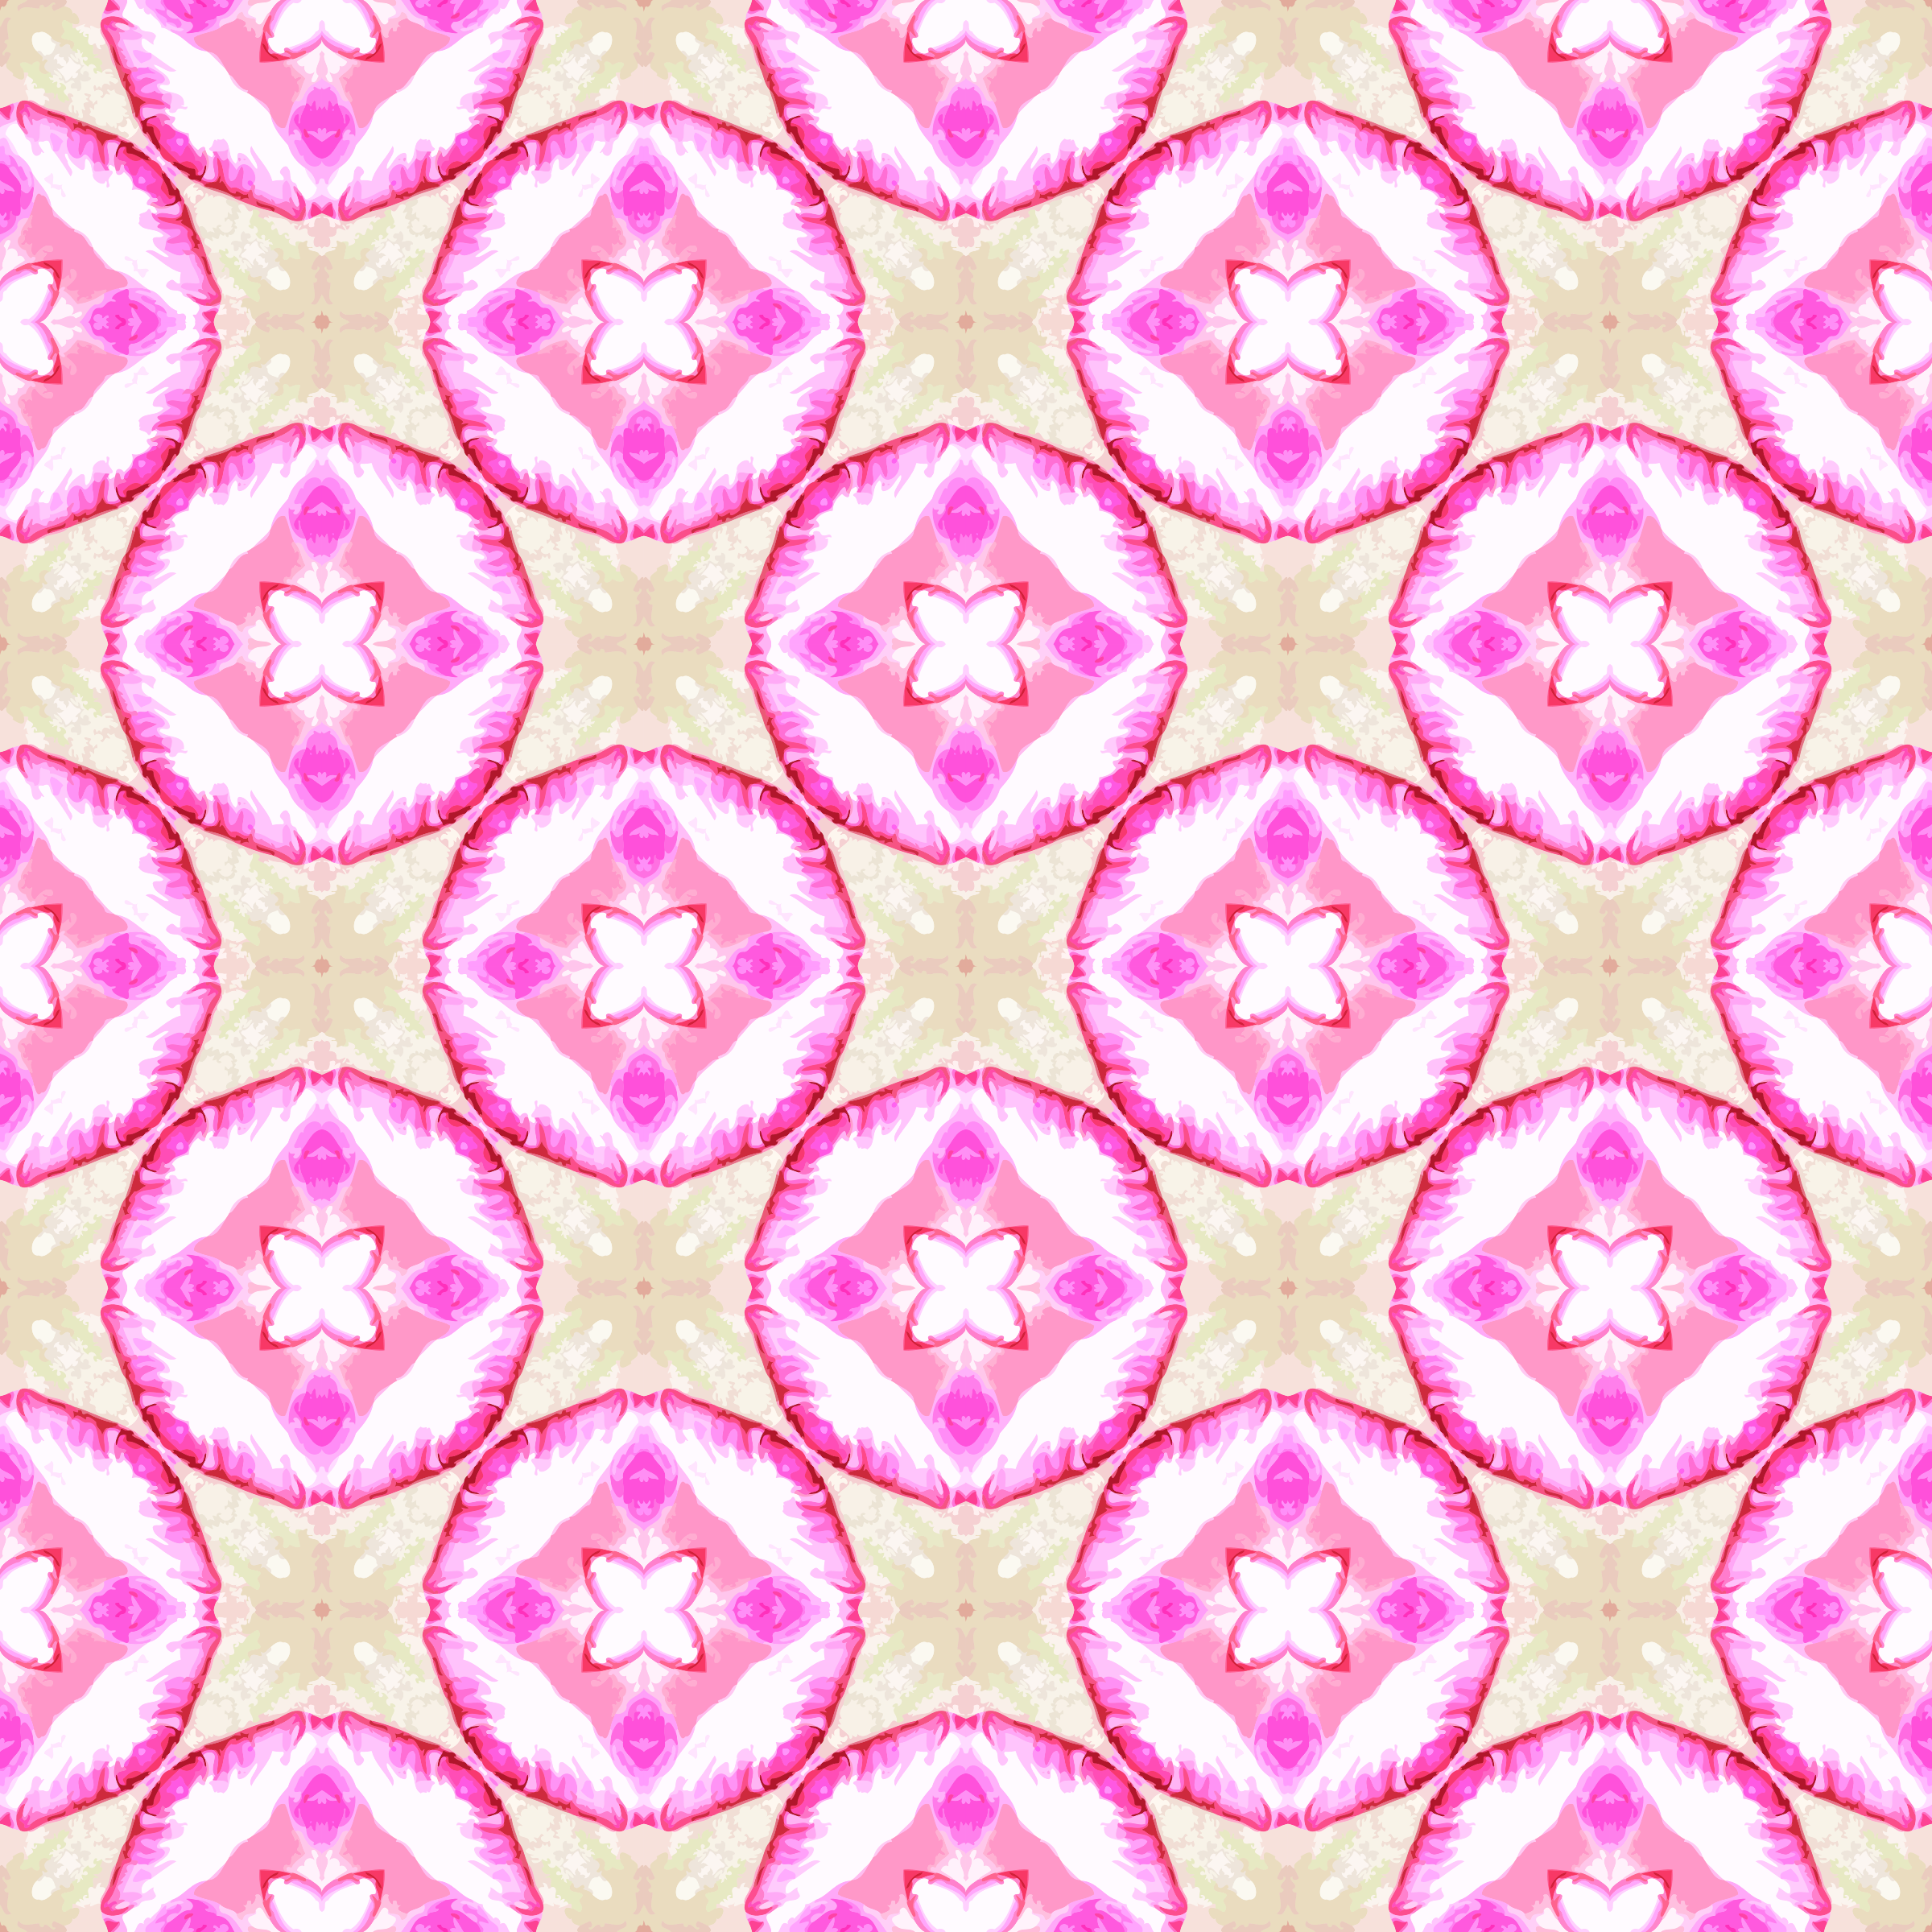 Background pattern 142 (colour 6) by Firkin